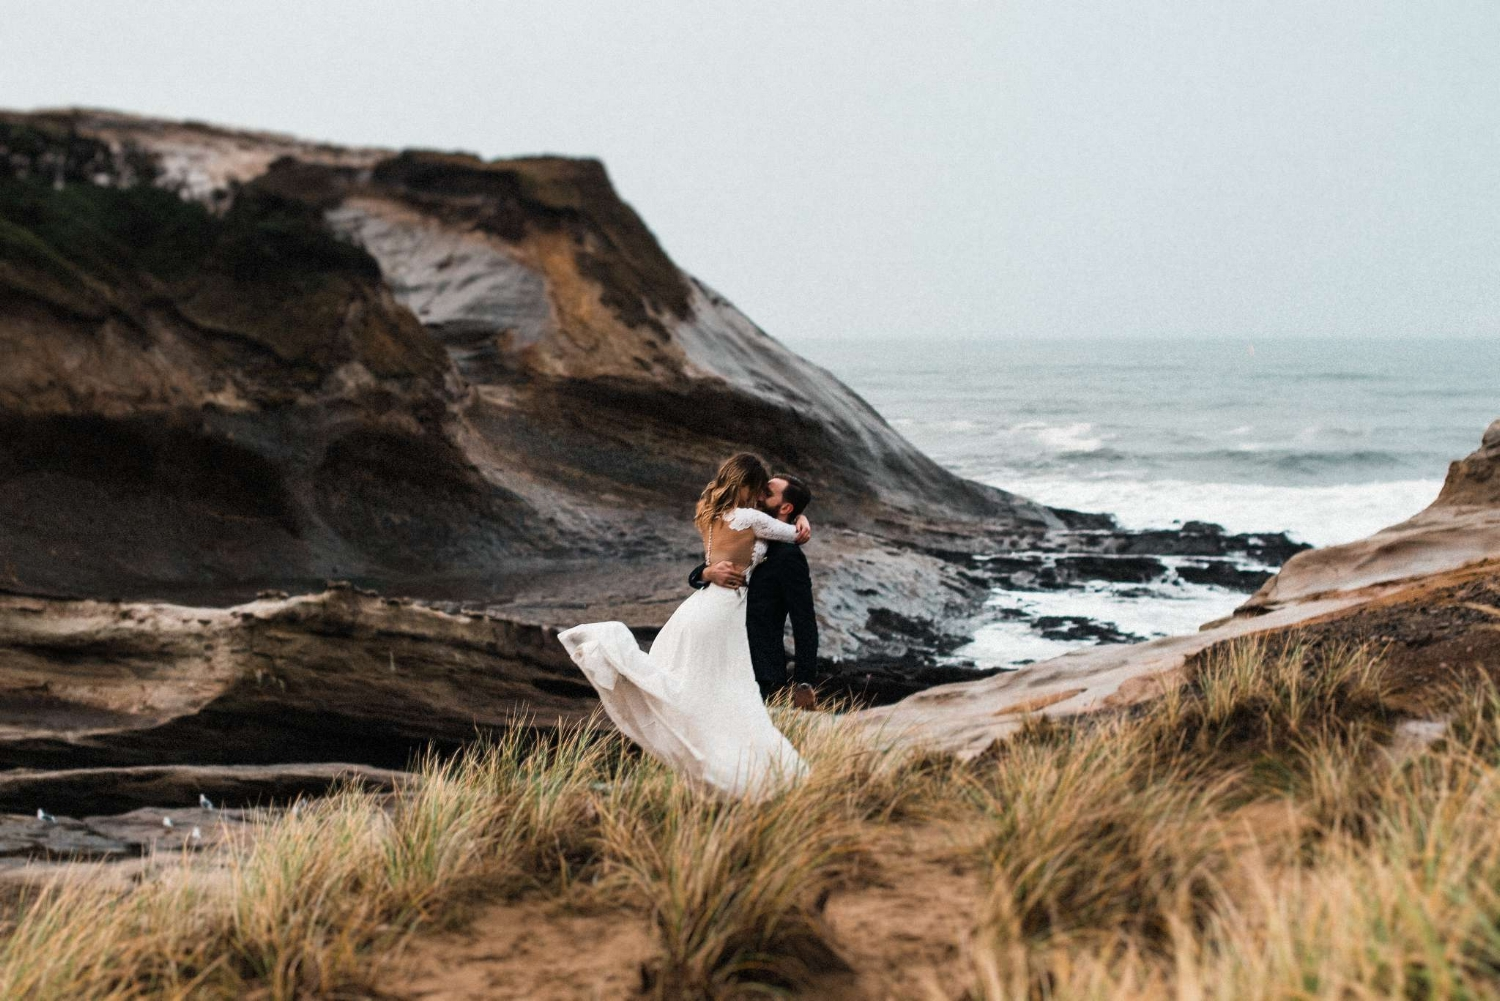 Cape_Kiwanda_Airstream_Elopement_The_Foxes_Photography_8.jpg